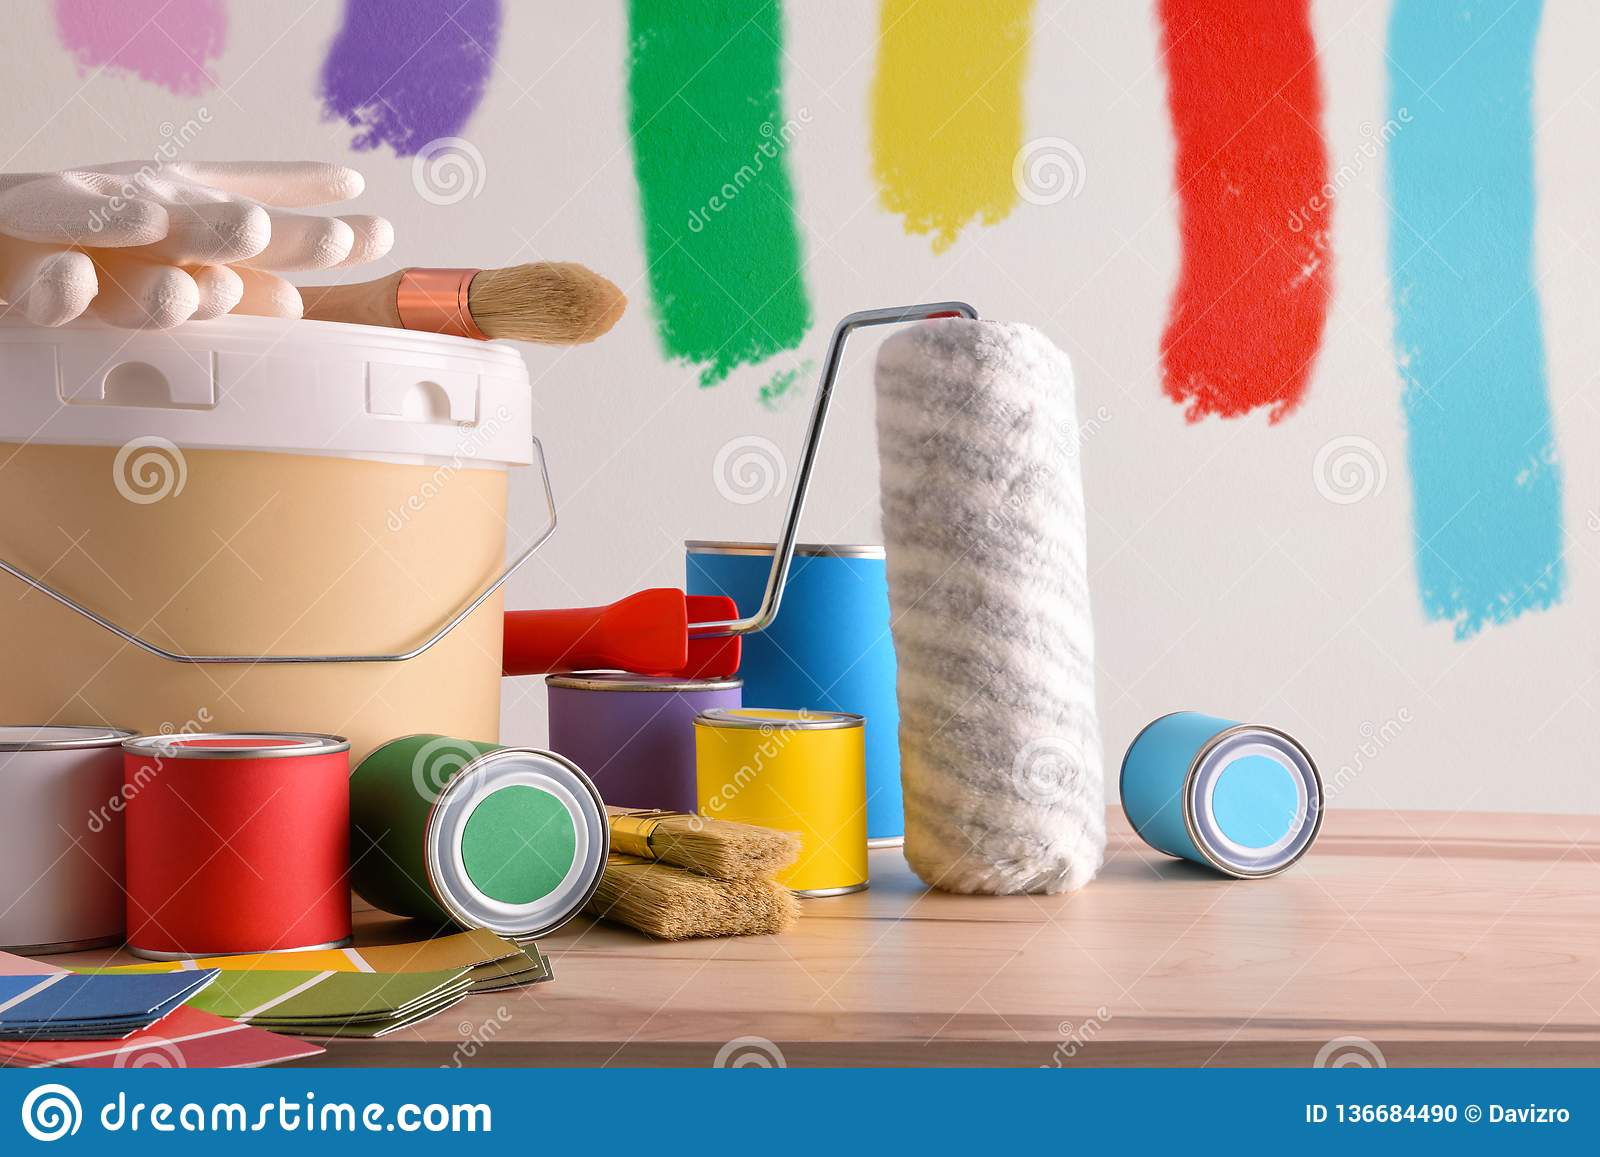 Painting Tools Composition For Home Painted Wall Background Stock